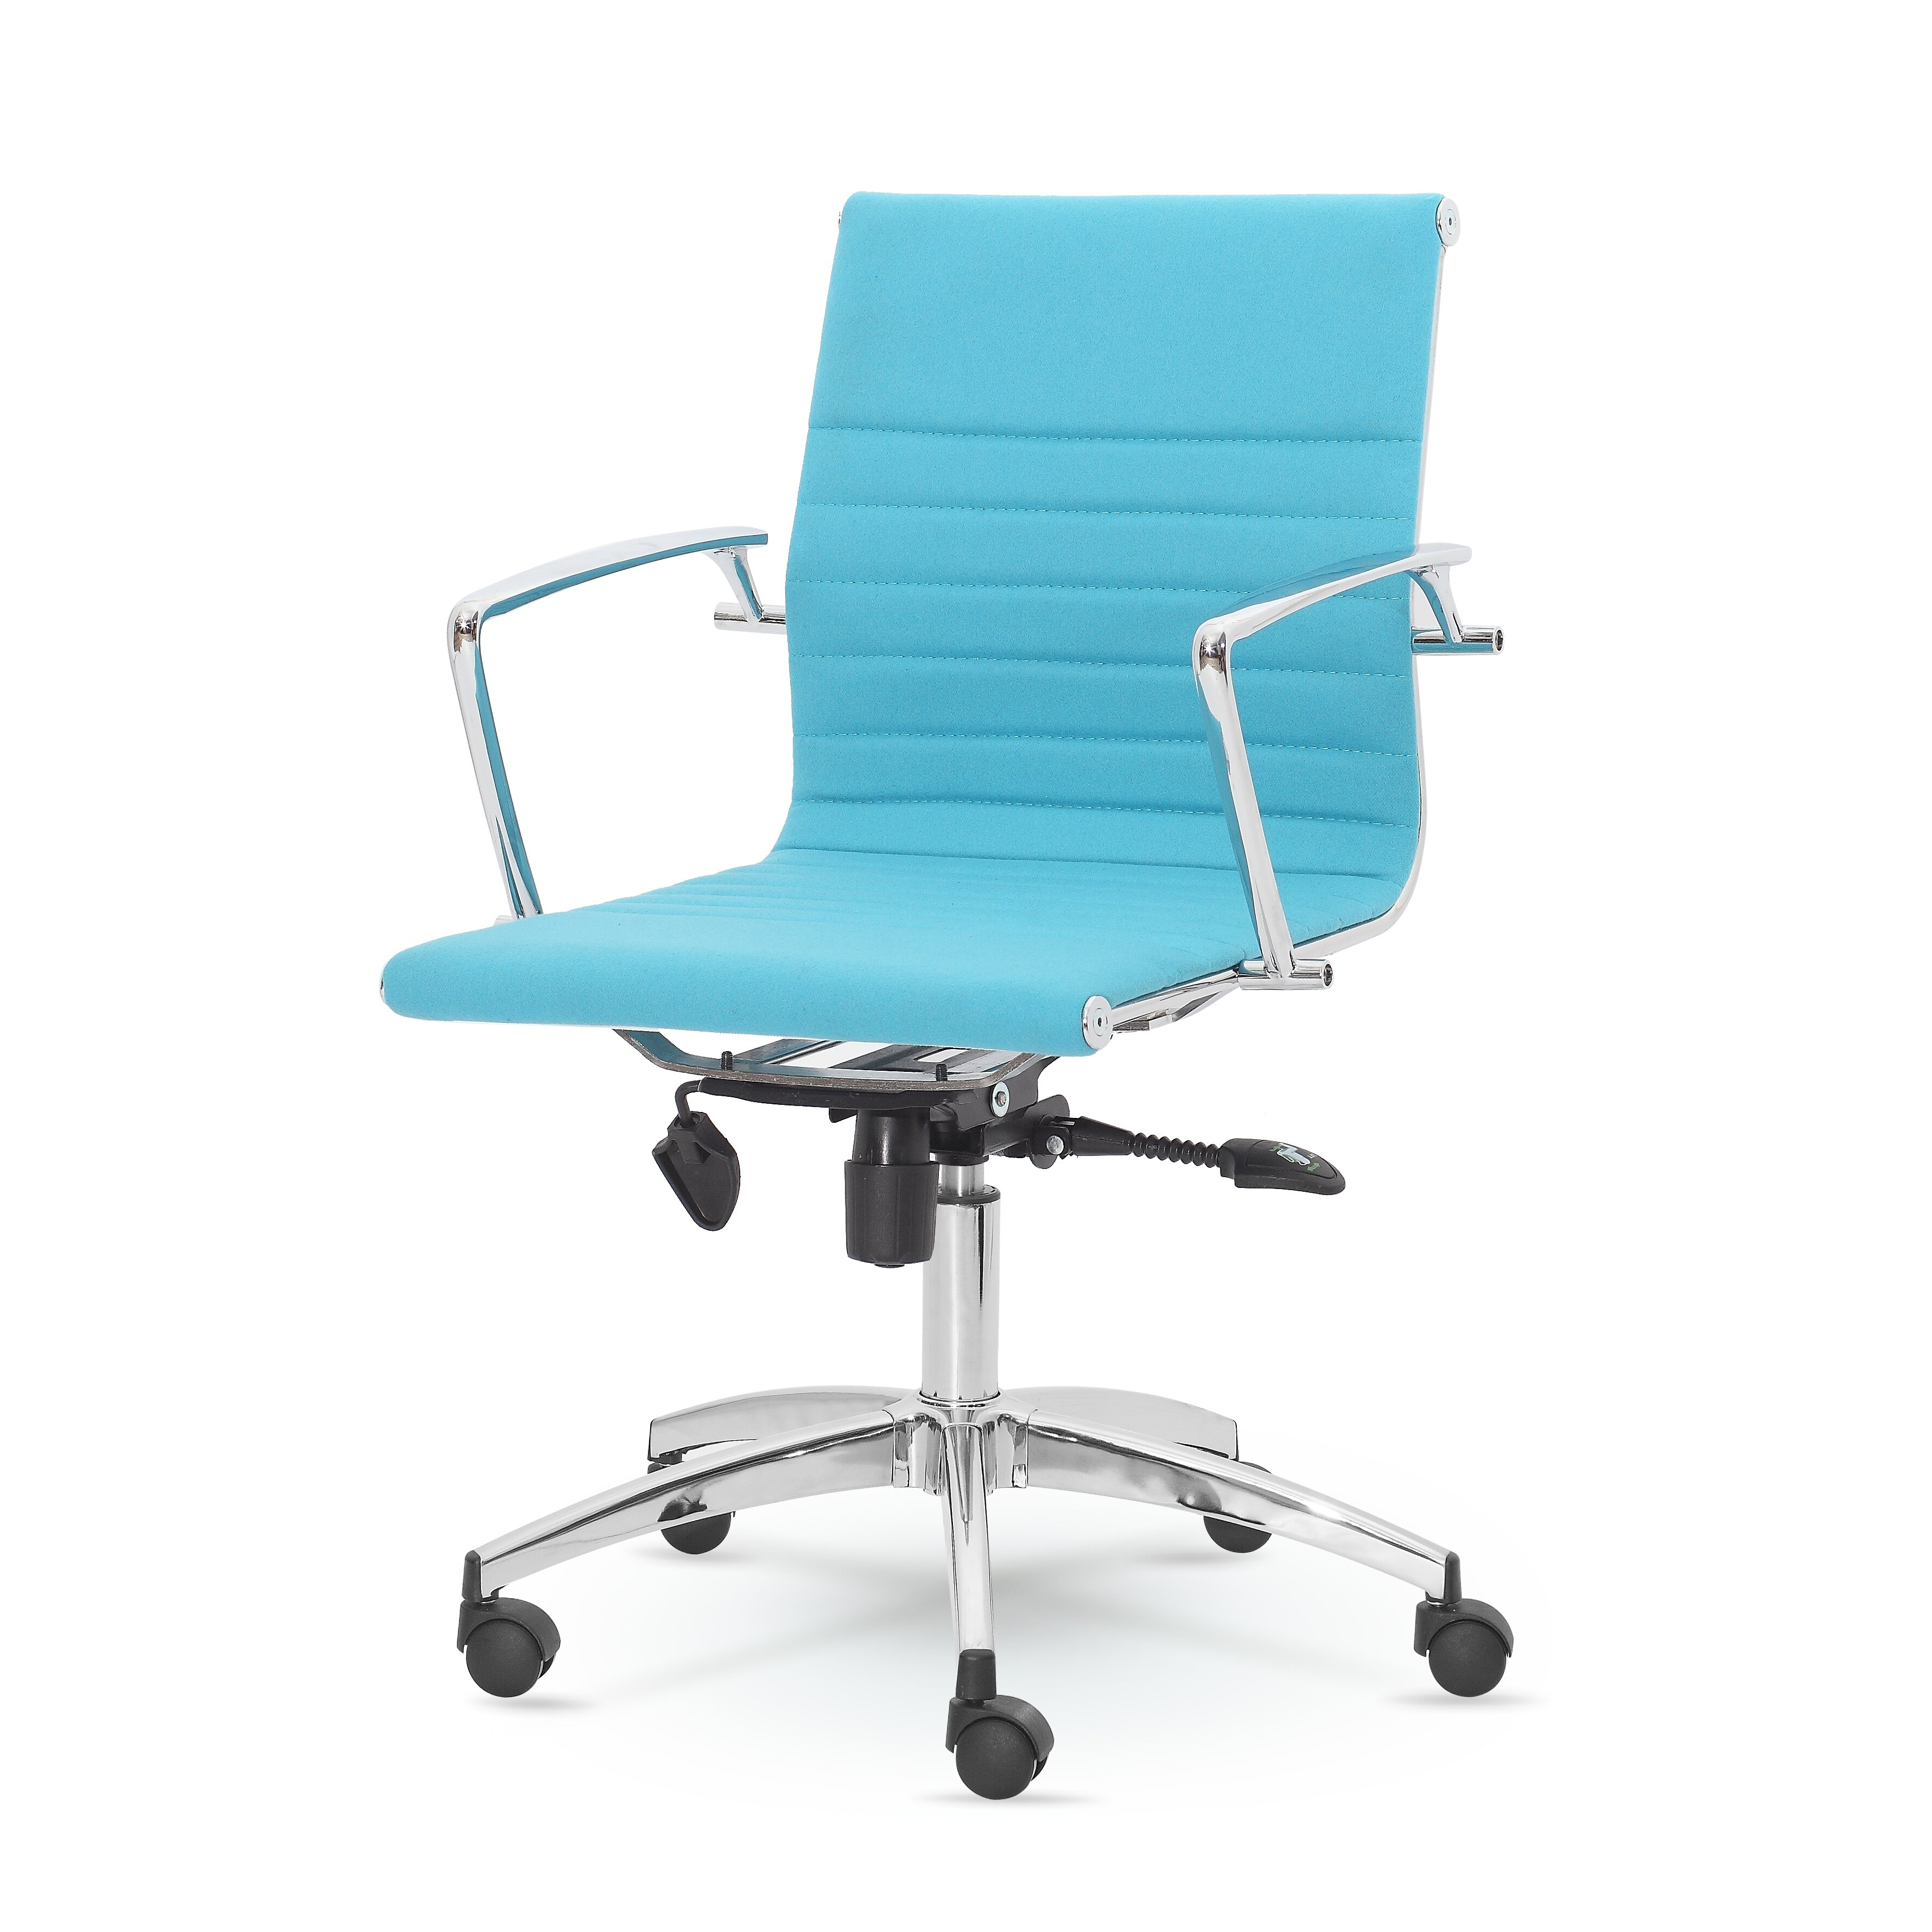 Furniture Industries Office Chair